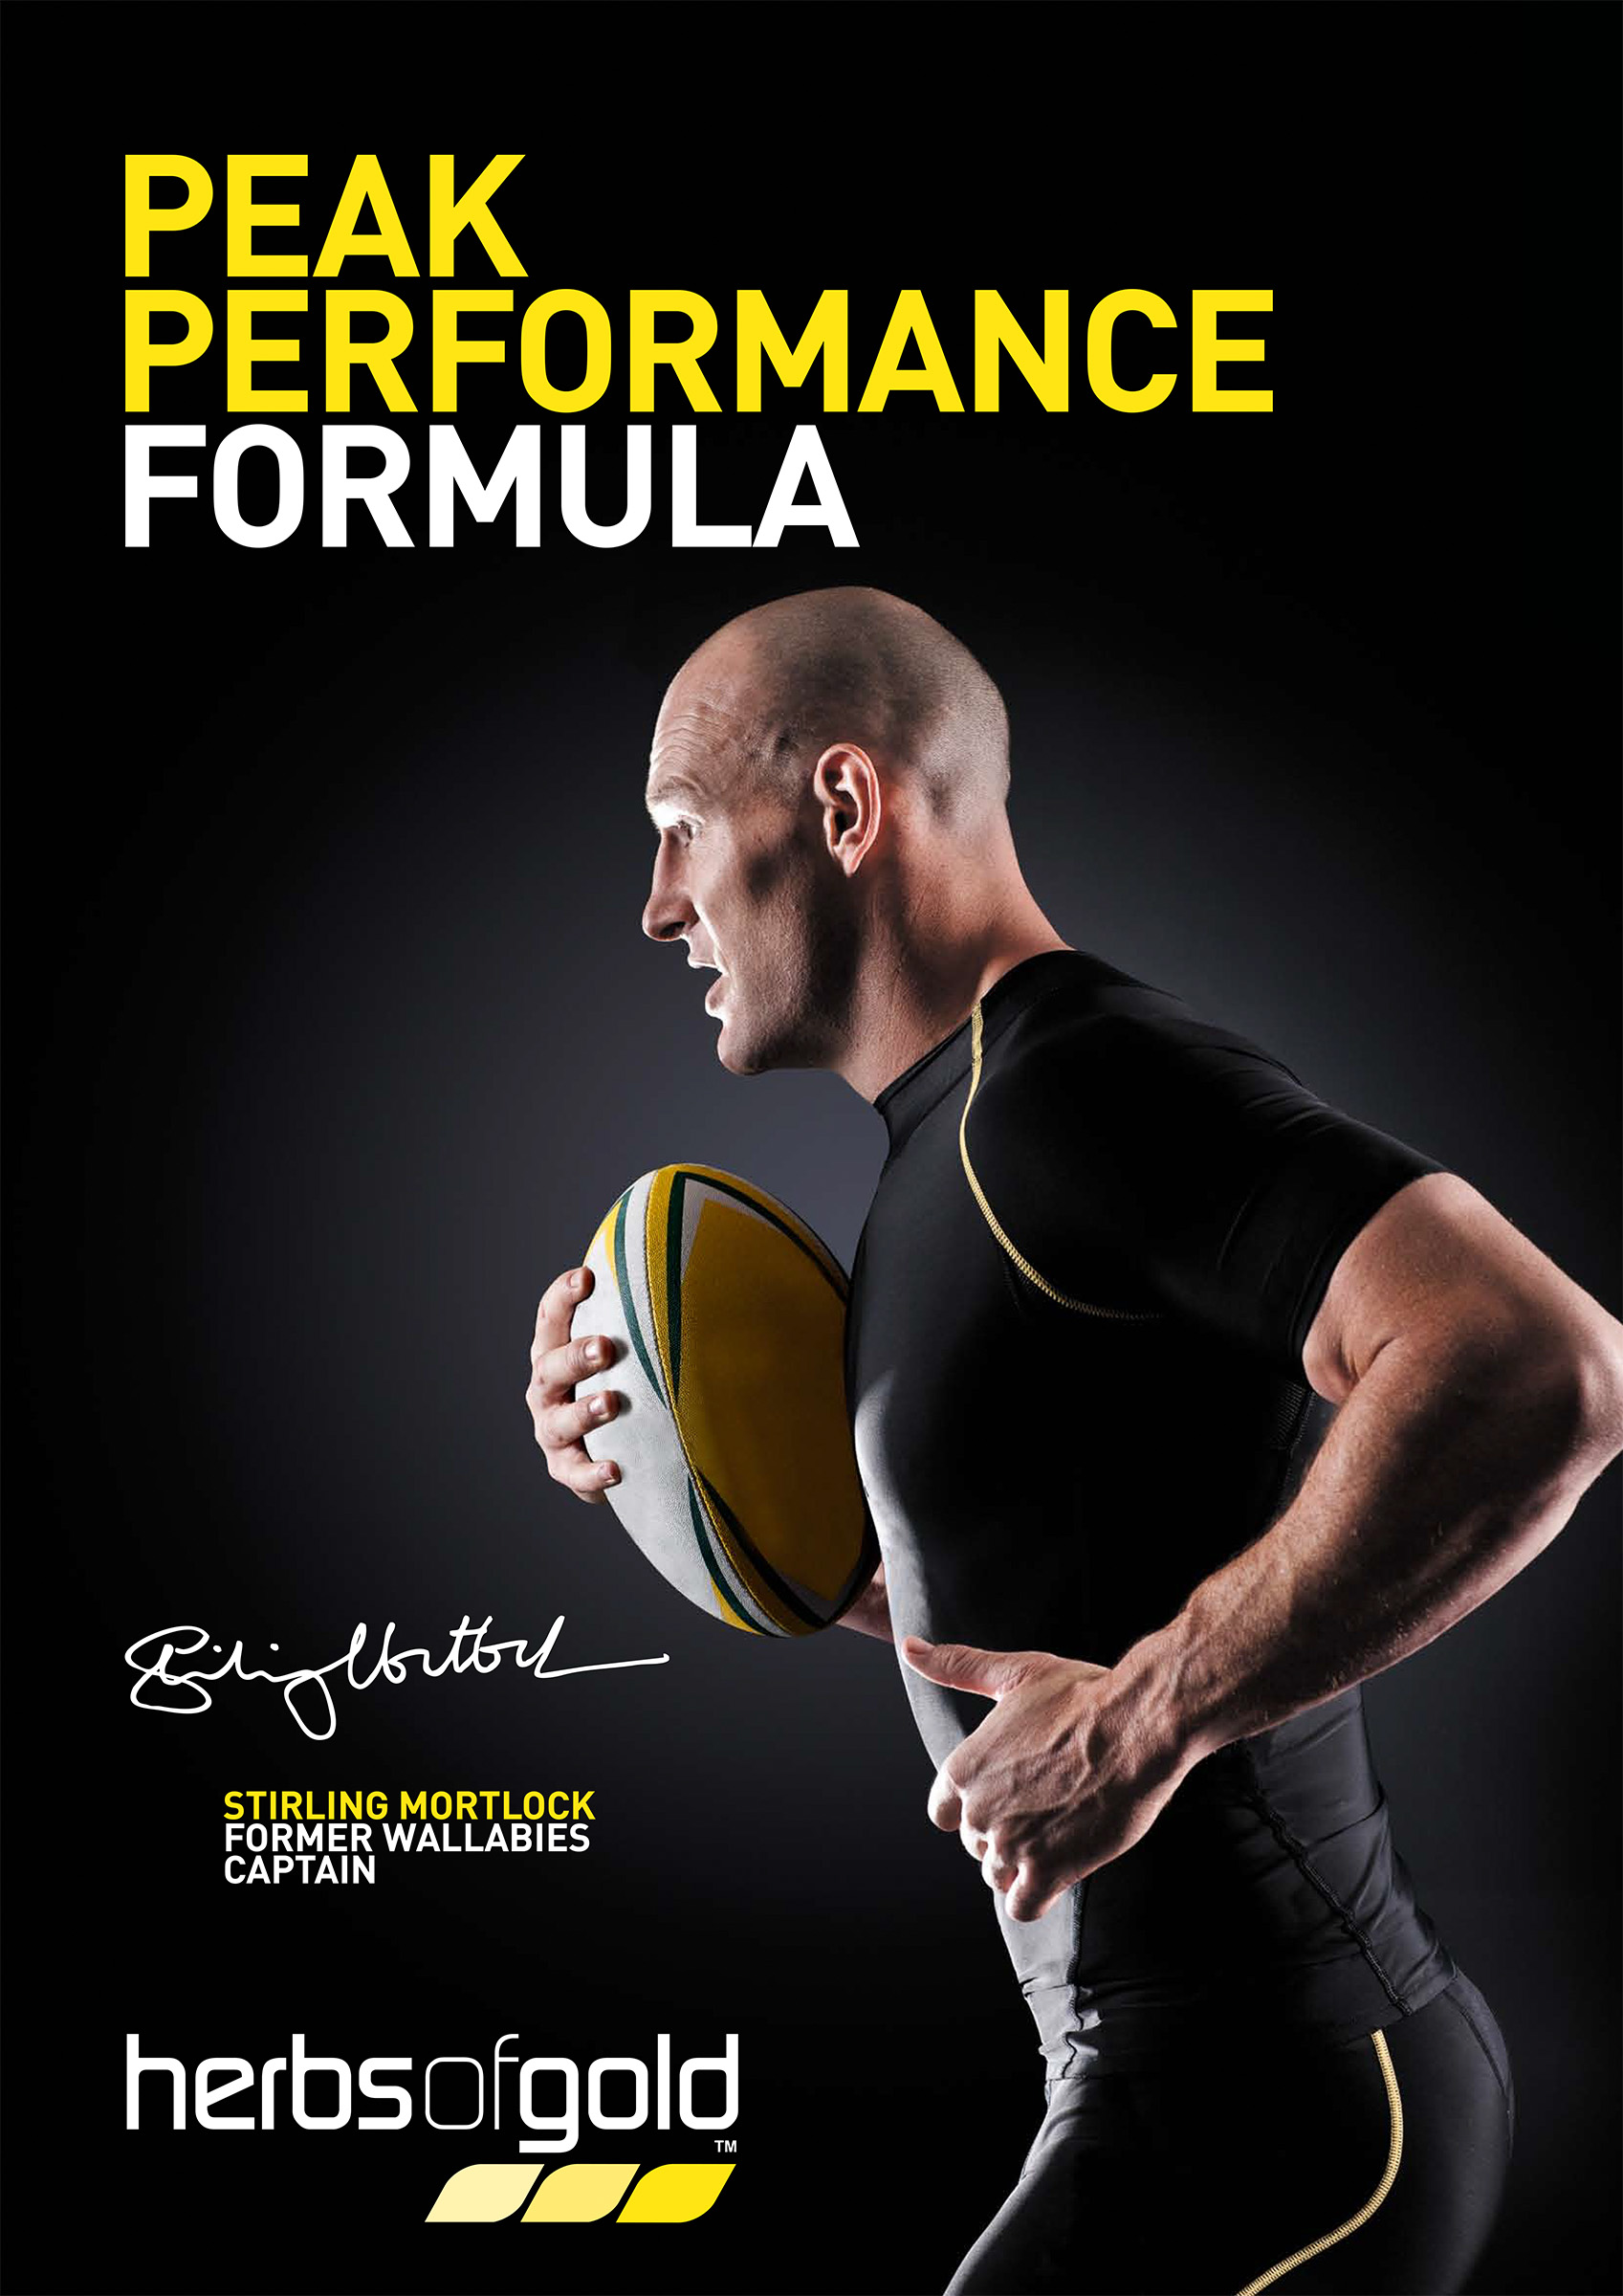 Advertising studio photography for Herbs of Gold of Stirling Mortlock running with rugby ball